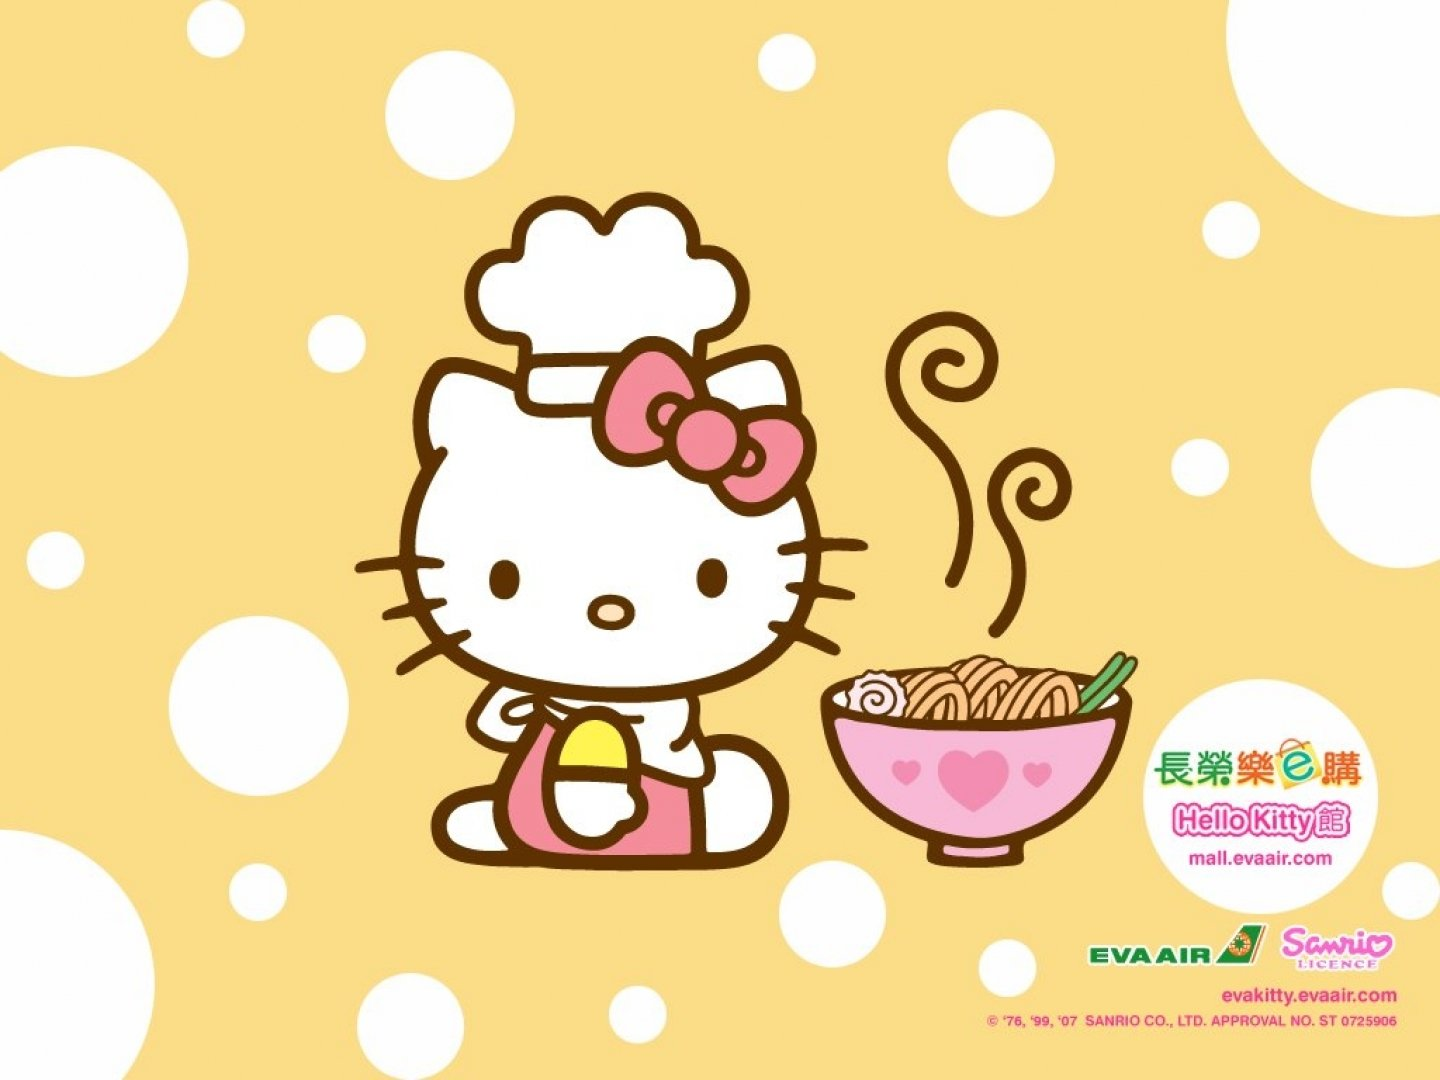 Beautiful Wallpaper Hello Kitty Ice Cream - thumb-1920-469142  Graphic_626850.jpg